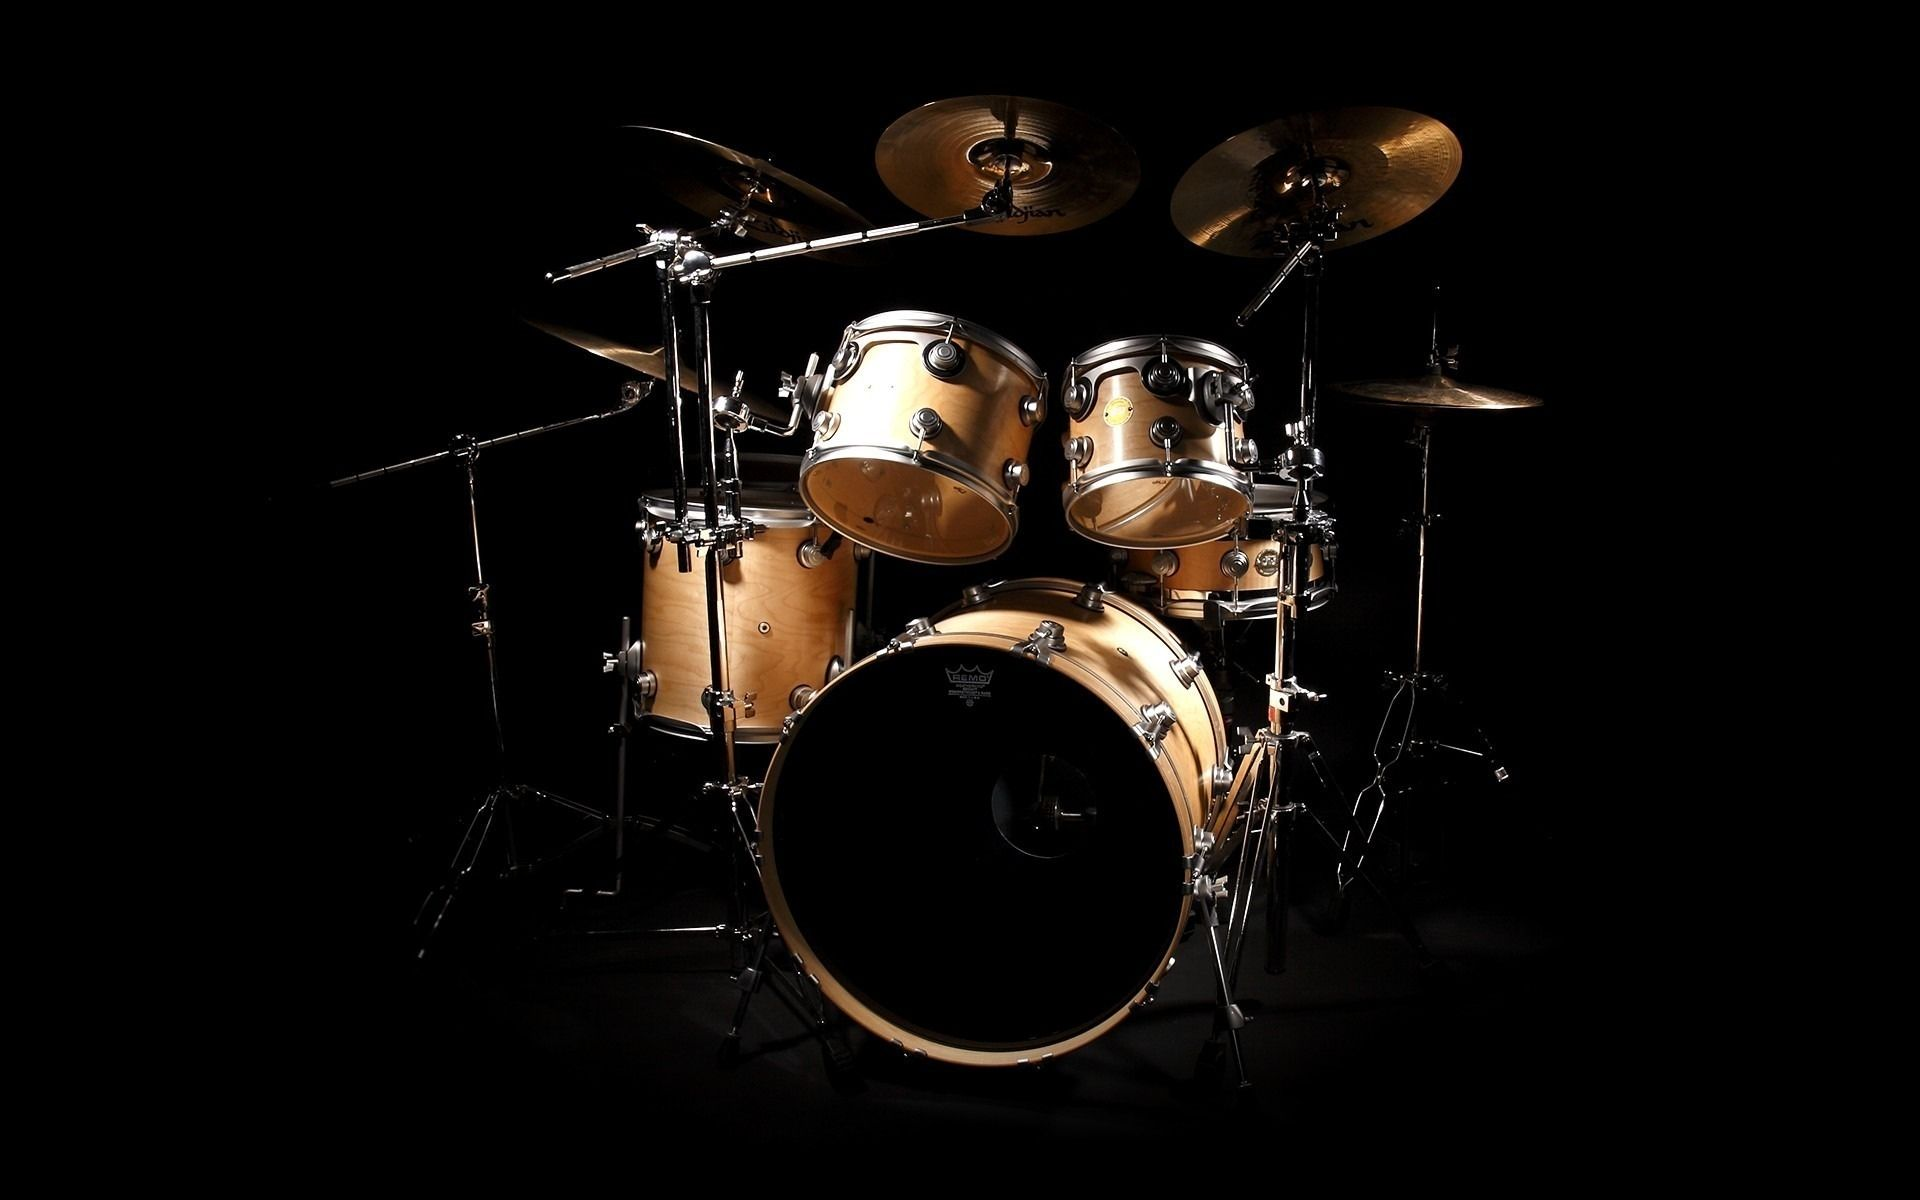 Music Drums Wallpaper In 2019 Drums Wallpaper Music